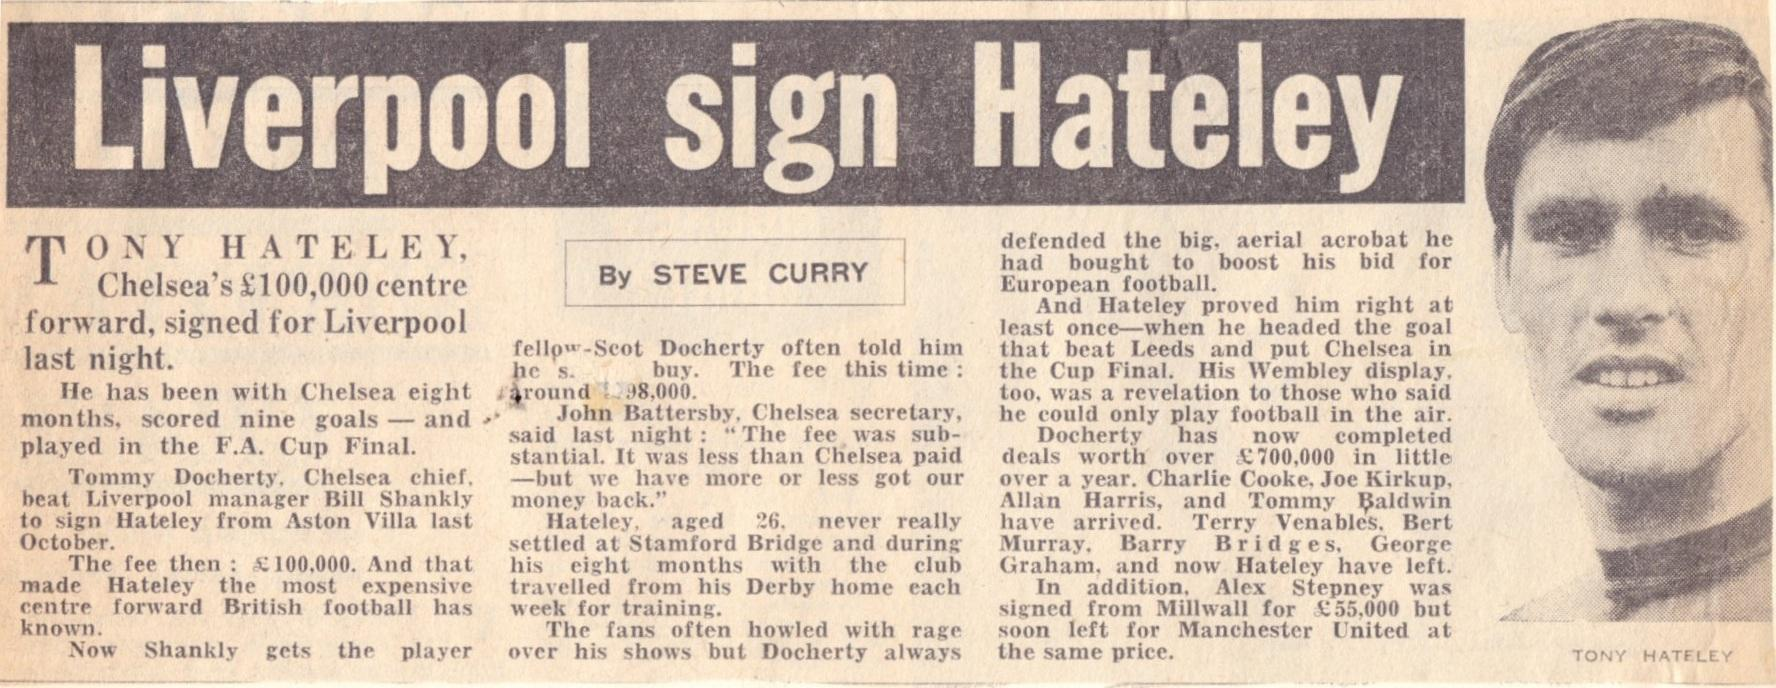 Liverpool sign Hateley - from 6 July 1967